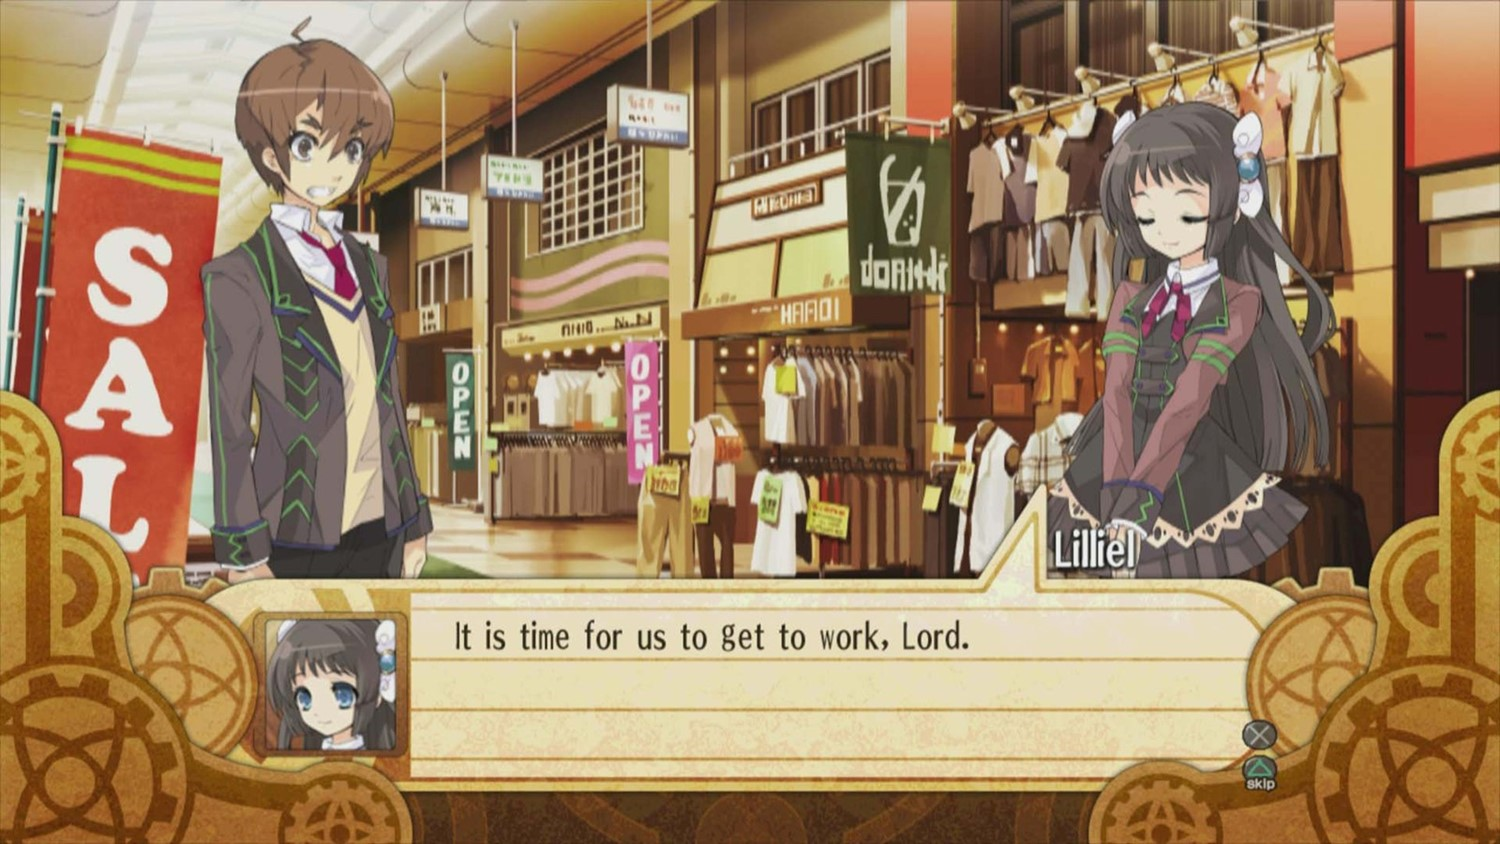 3b - The Guided Fate Paradox offered players a cha